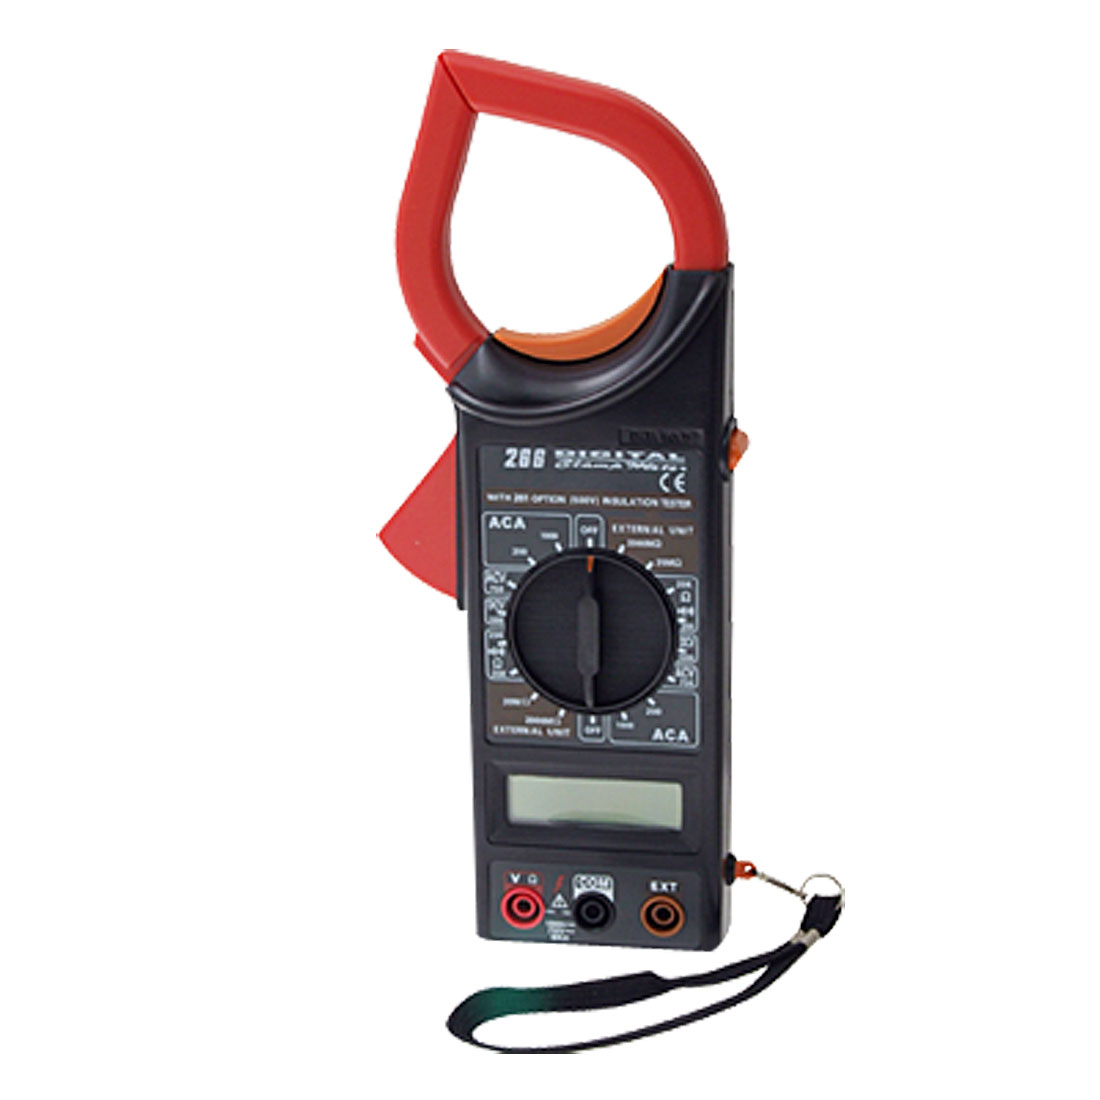 Home-Industry-LCD-Digital-Clamp-Meter-Electronic-Tester